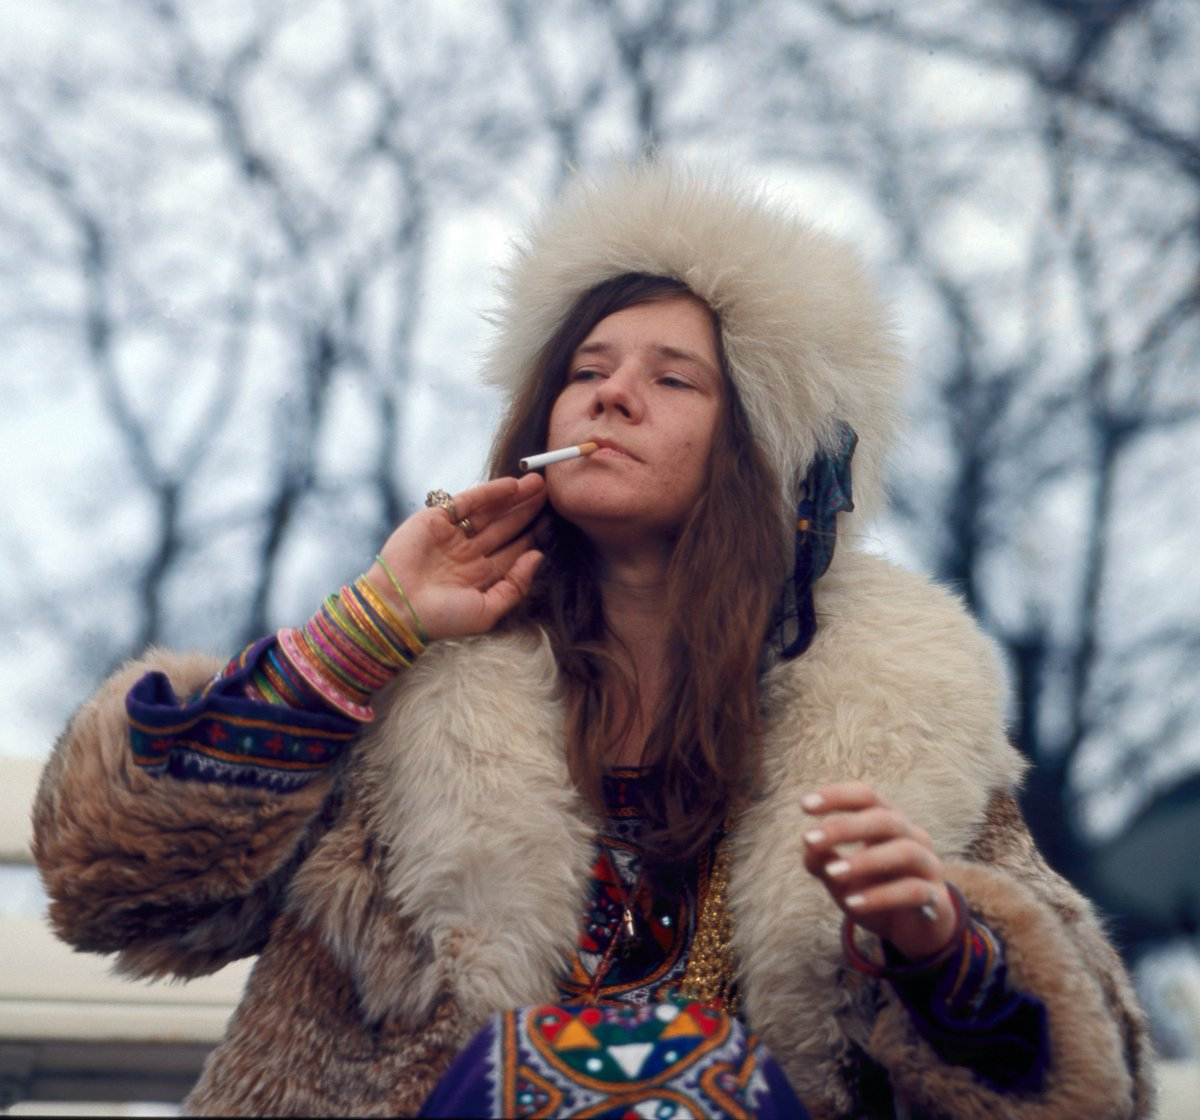 Straks bij @hetuurvandewolf om 22.55: Janis: Little Blue Girl. Intrigerend portret over blueslegende Janis Joplin https://t.co/b35bl1pCvi